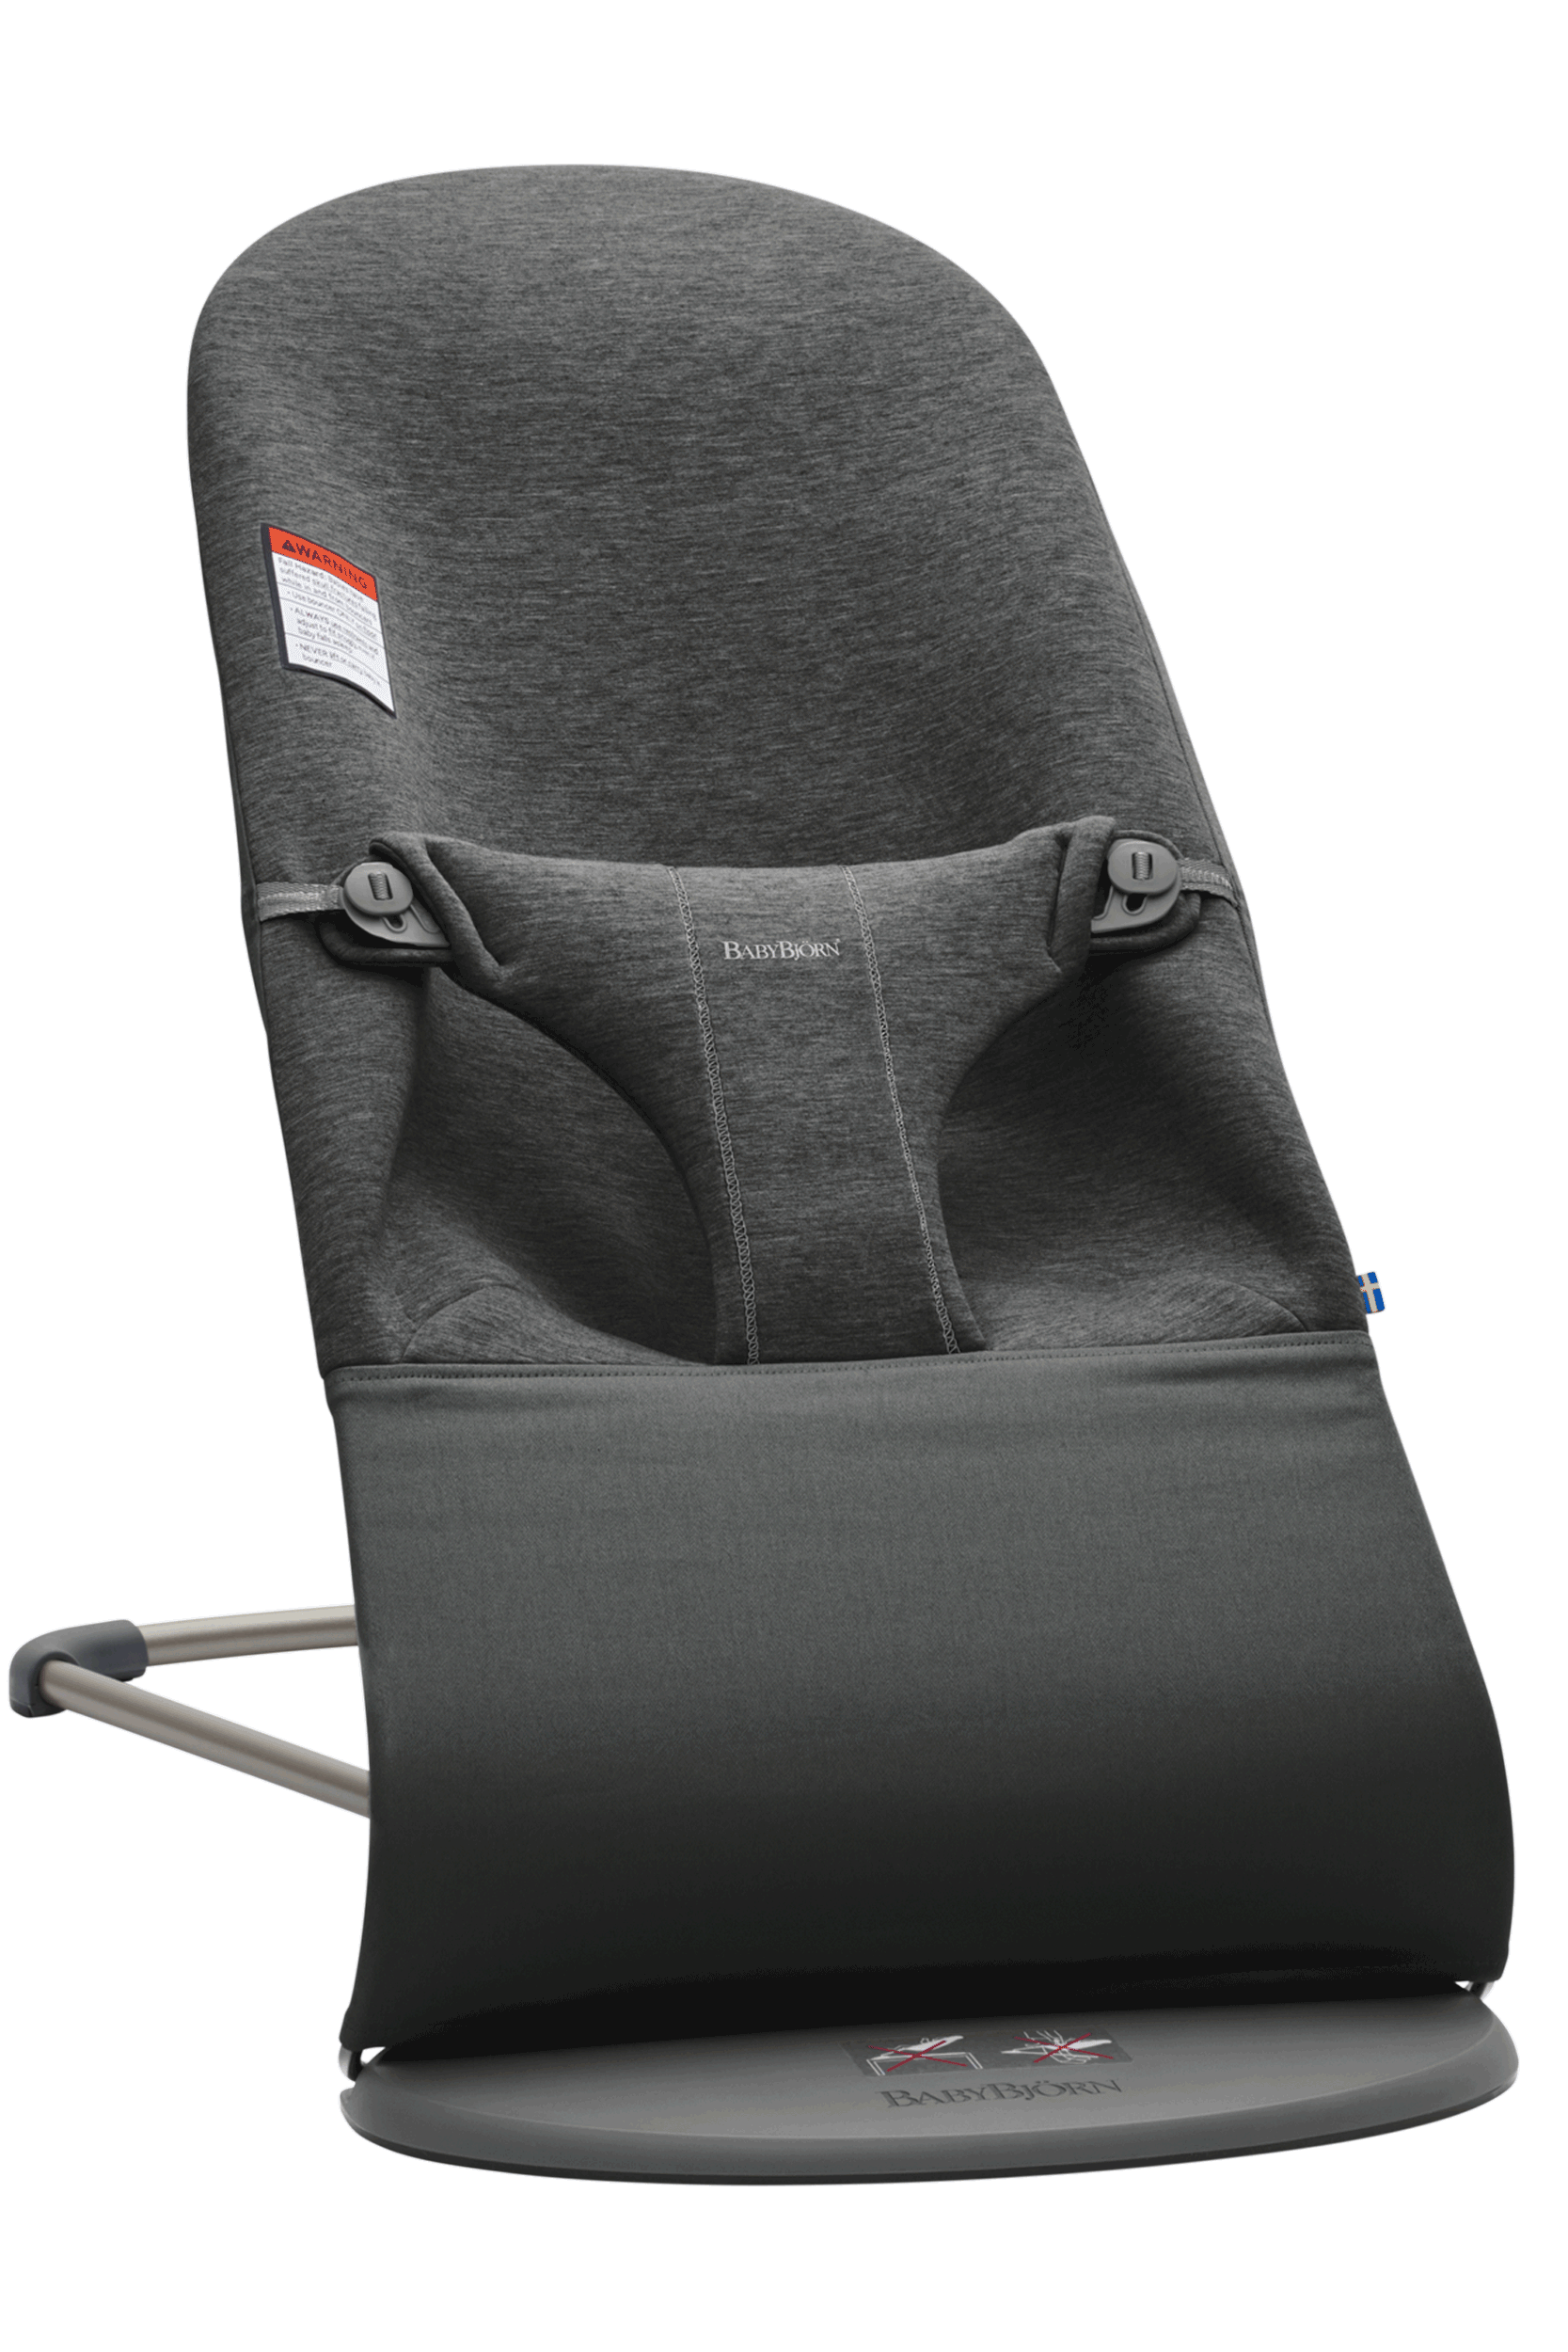 Charcoal Grey 3D-Jersey BABYBJORN Fabric Seat for Bouncer Bliss